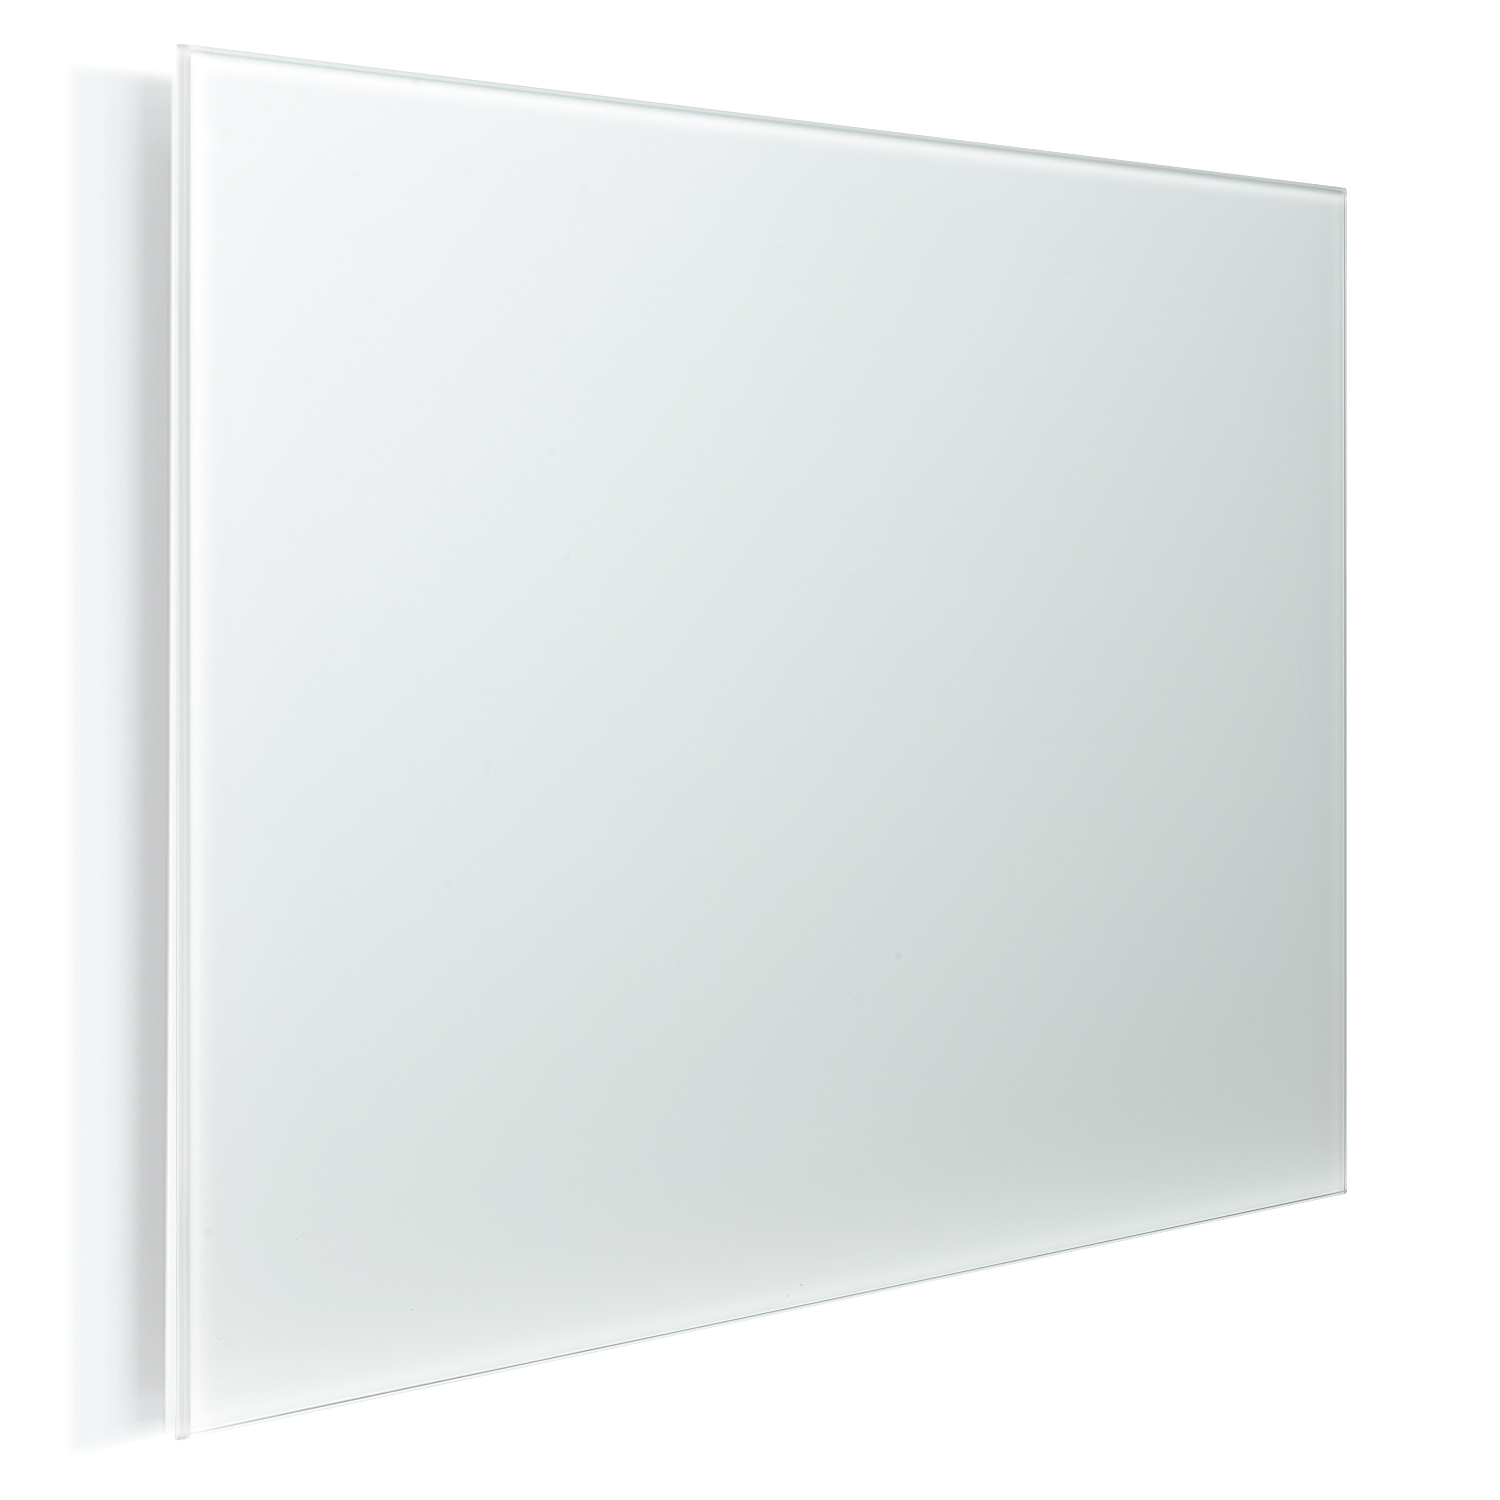 Glas Magnetwand Whiteboard Glas Affordable Glass Whiteboard Gallery With